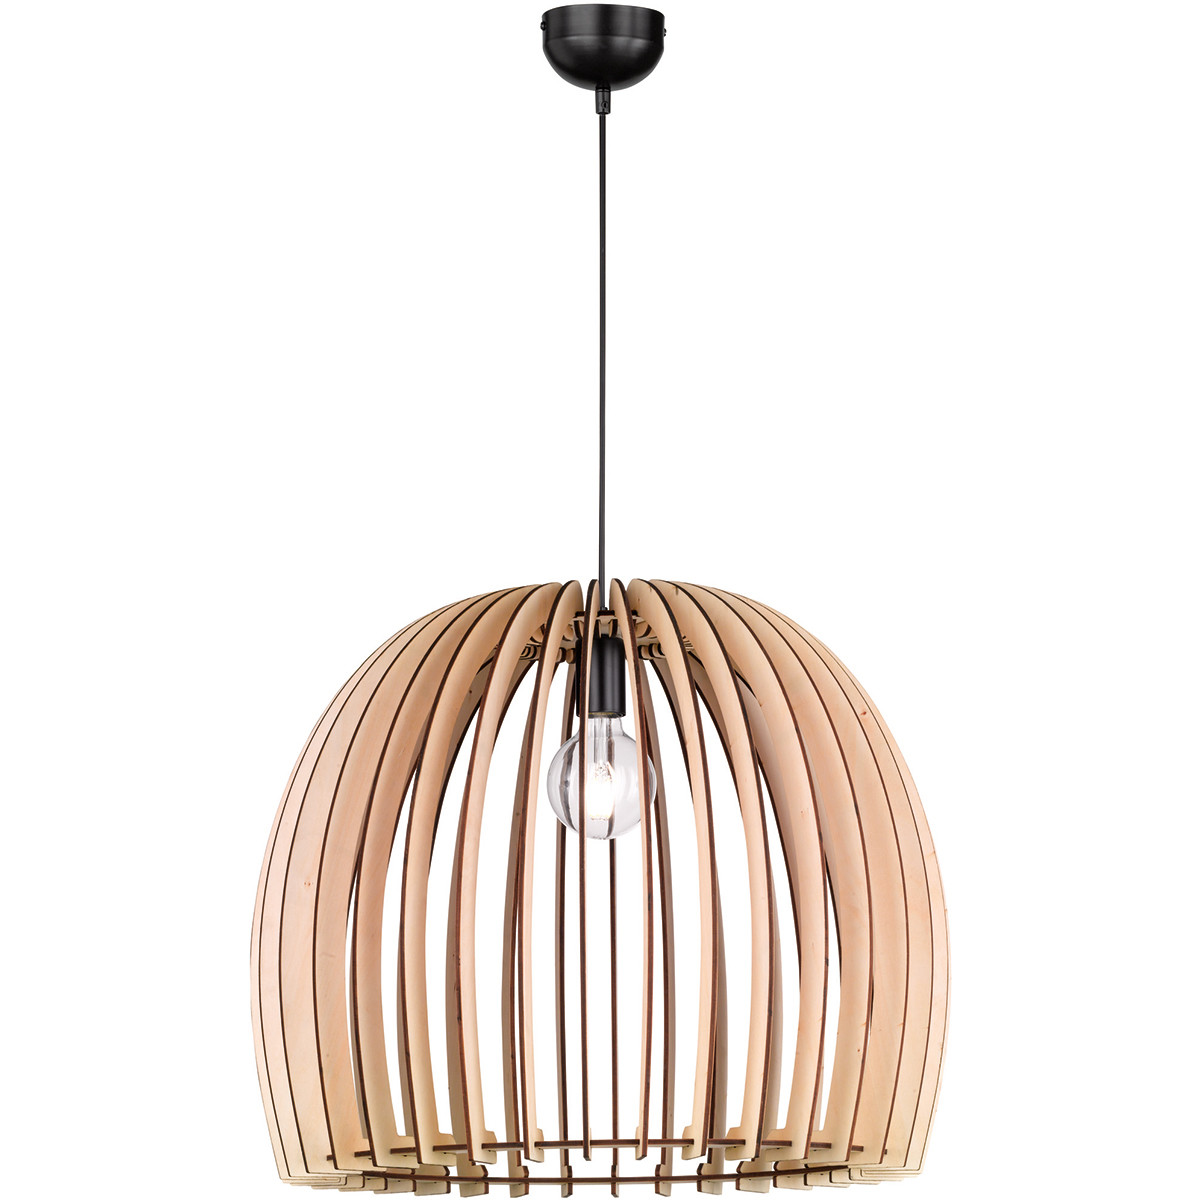 LED Hanglamp - Trion Wody XXL - E27 Fitting - Rond - Mat Lichtbruin Hout